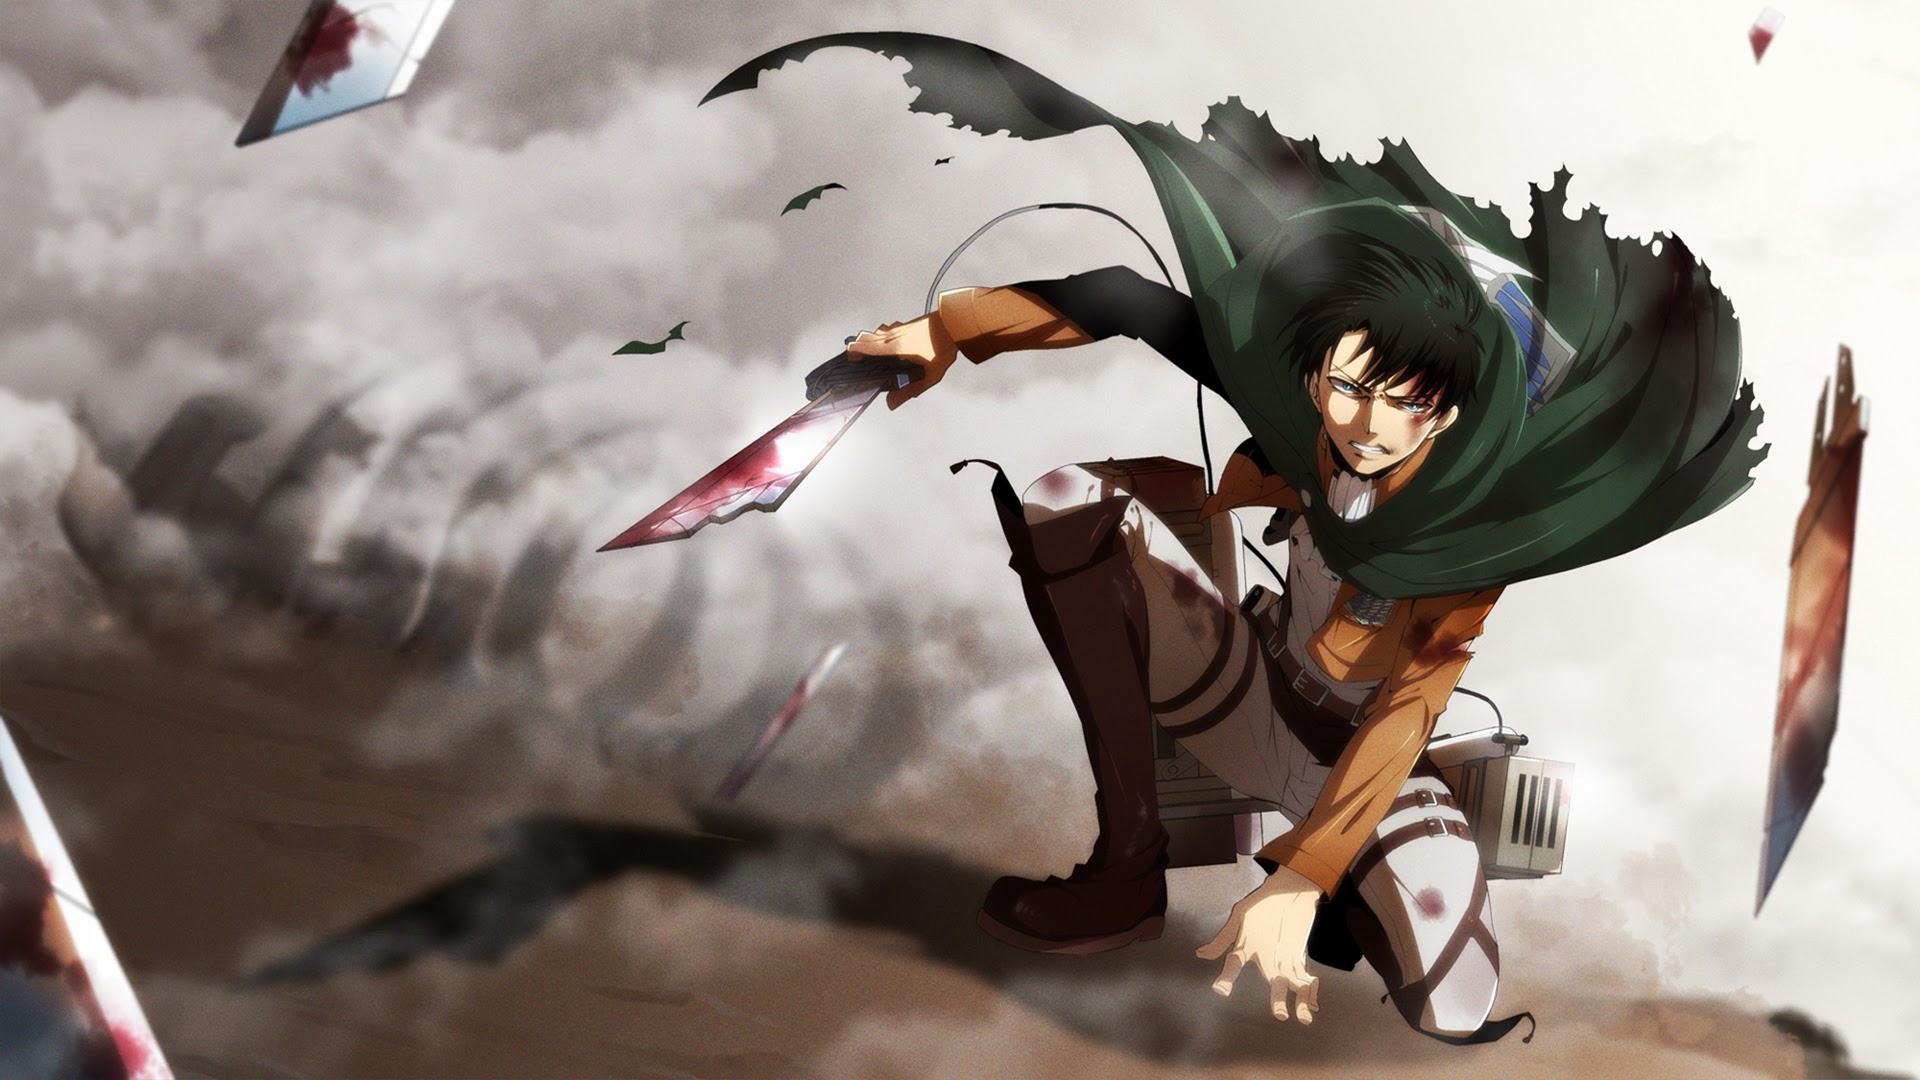 49+ HD Attack on Titan Wallpapers on WallpaperSafari